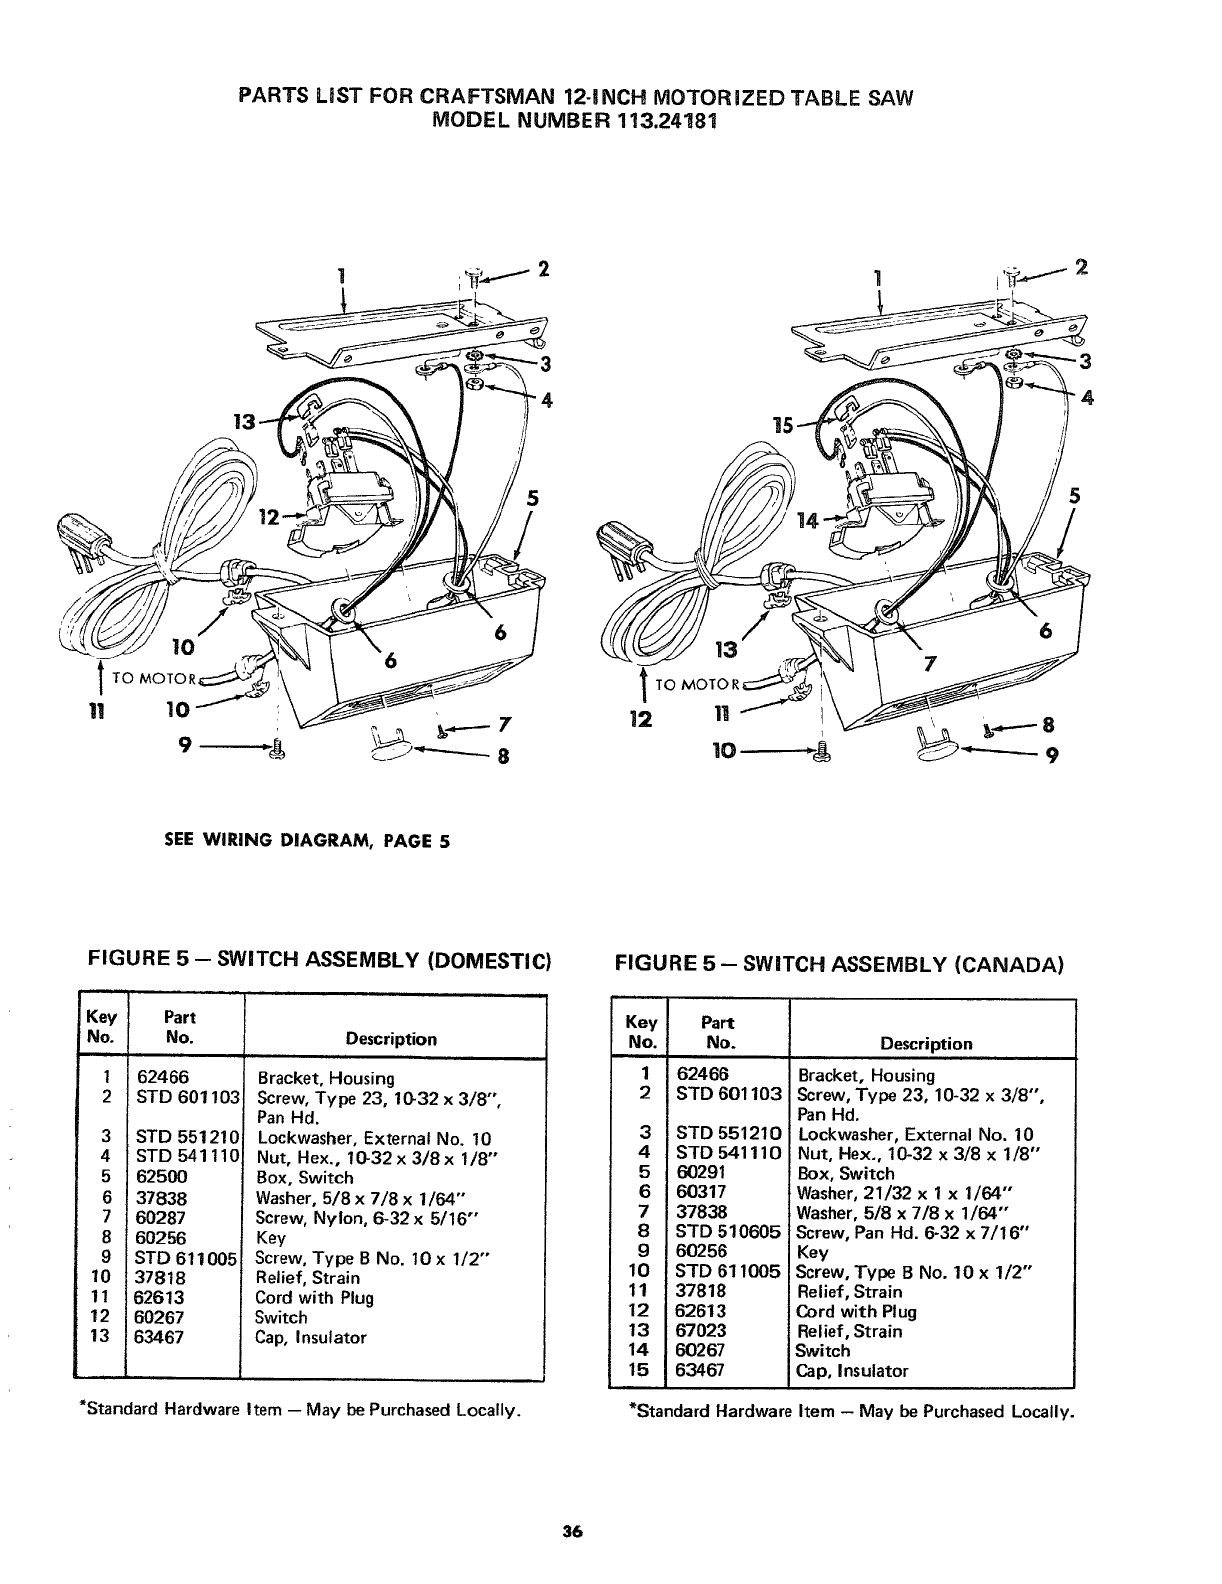 cffdc2e2 ba6b 43b2 a168 a3d4ed03dc5a bg24 table saw wiring diagram portable table saw wiring diagram \u2022 free Sears Craftsman 10 Inch Table Saw at gsmx.co